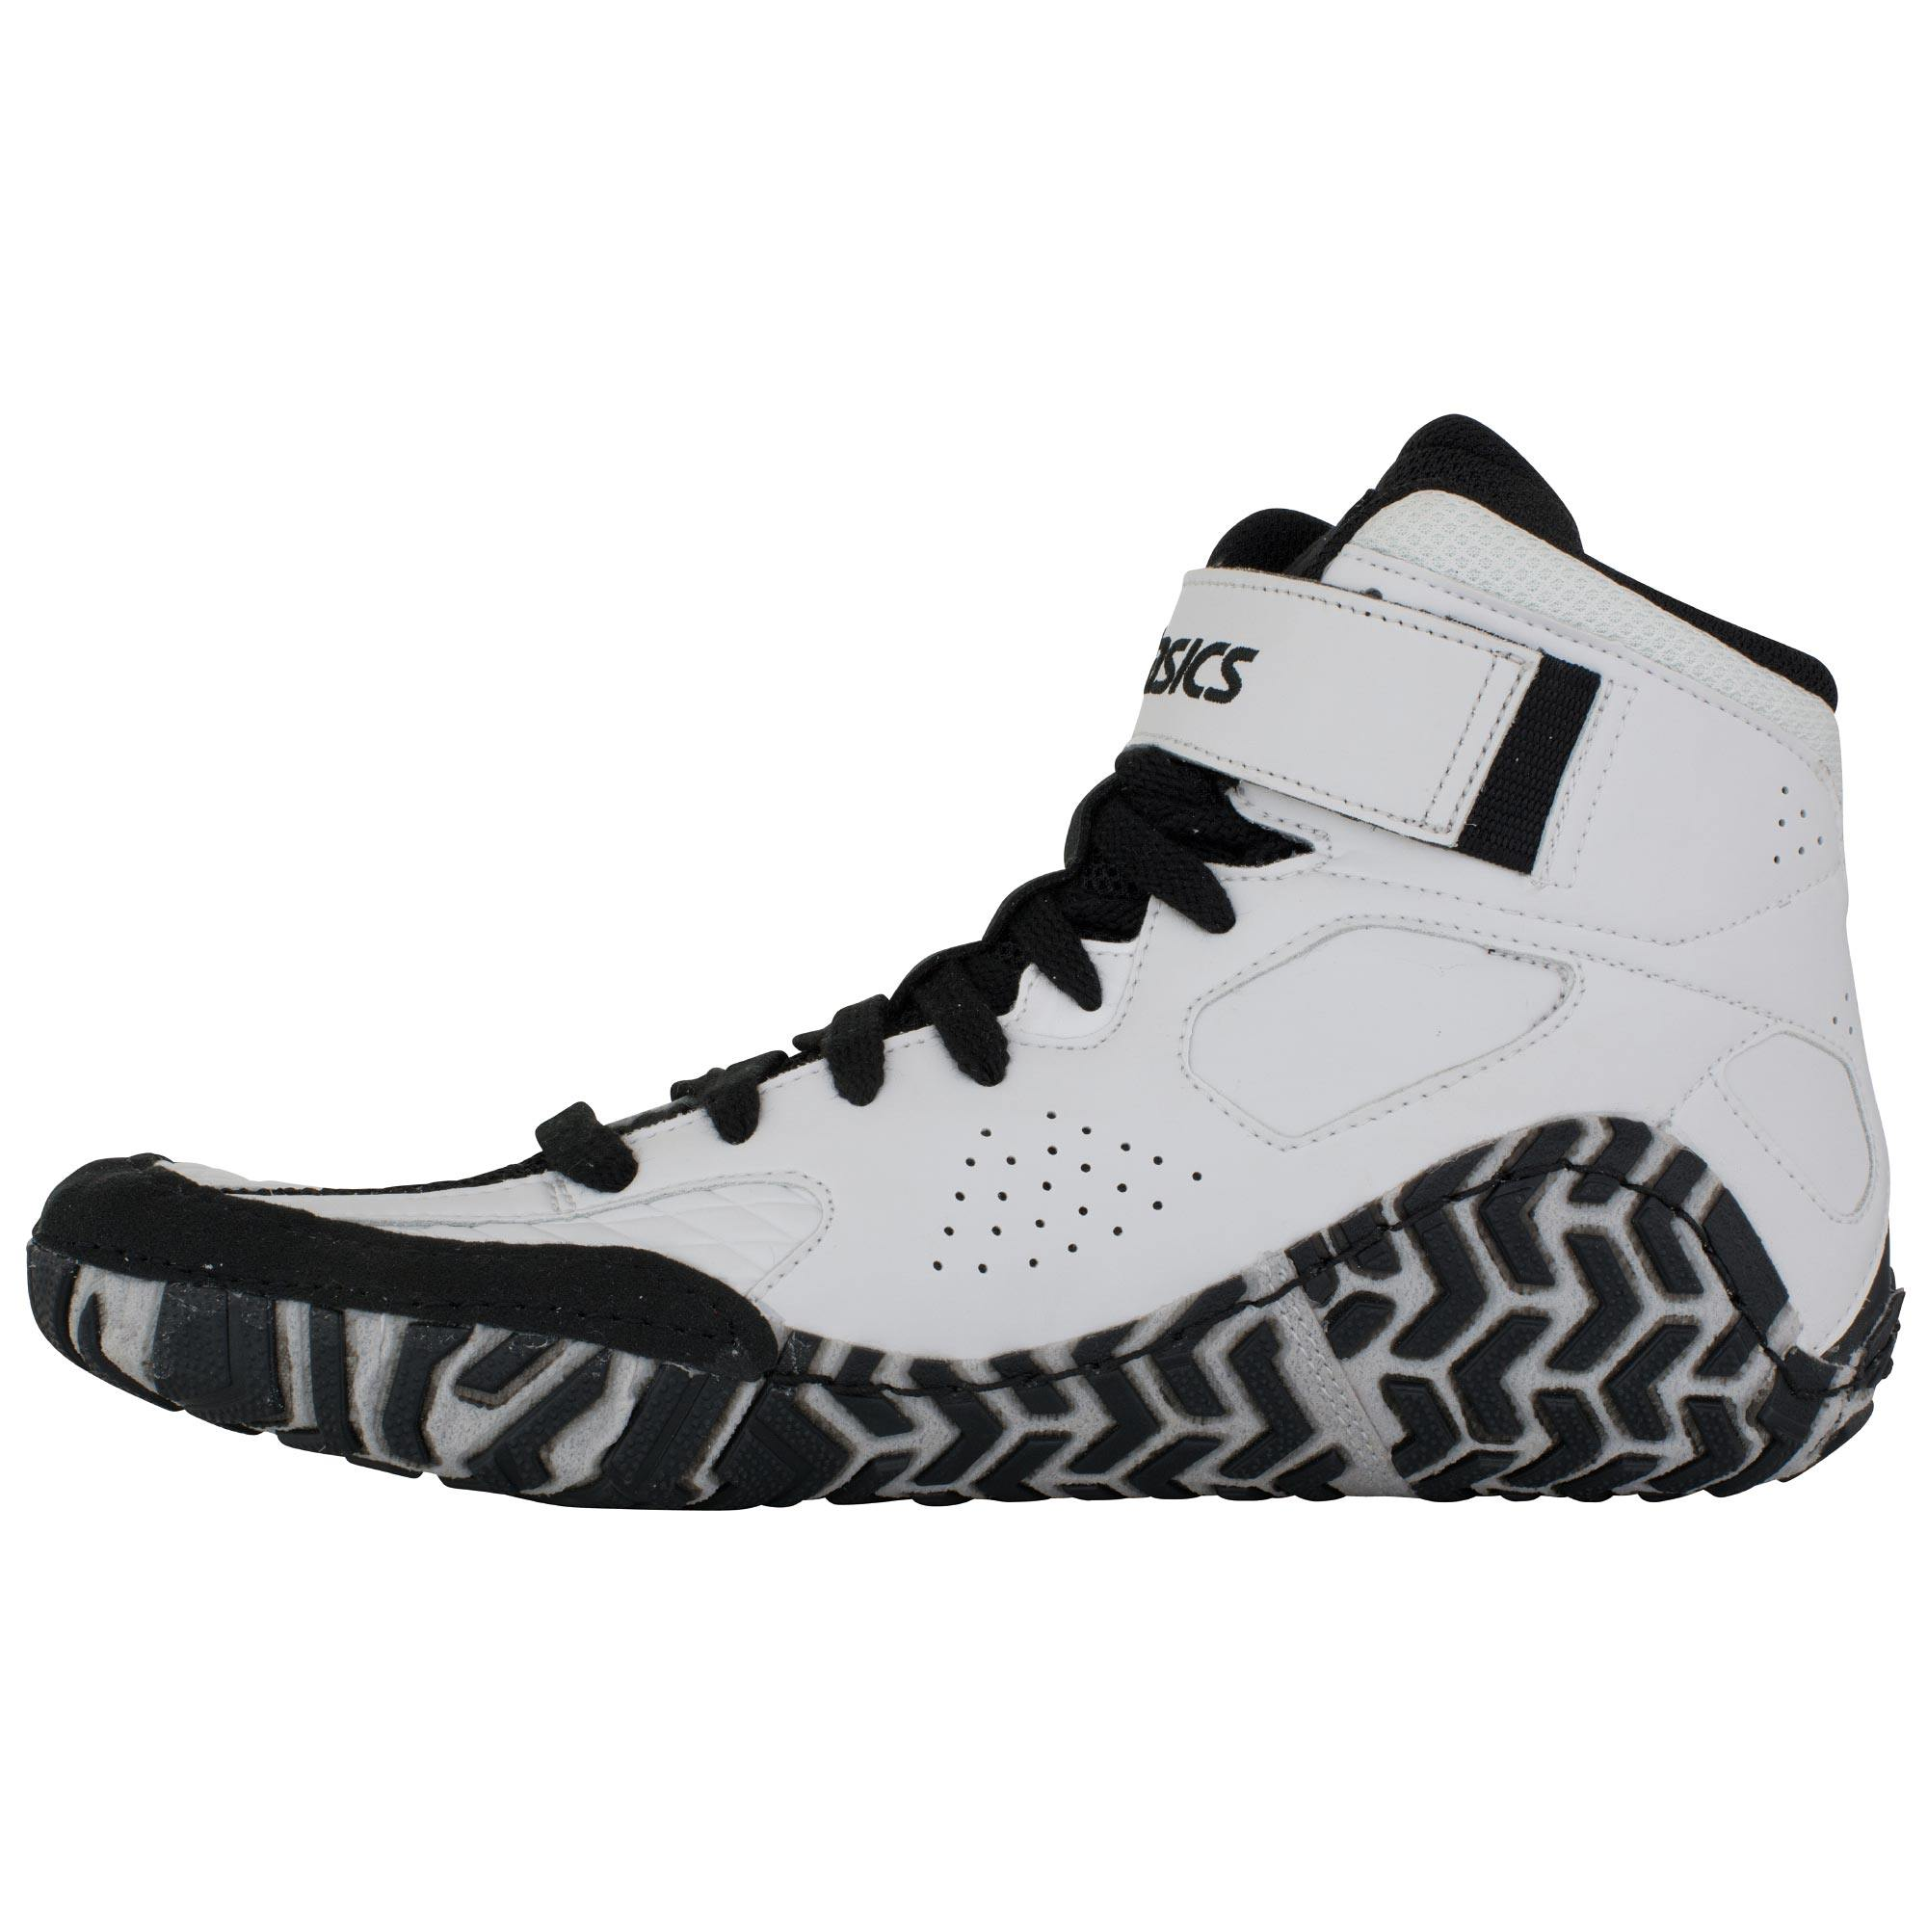 e69514381b9 ... Aggressor 2 White Black Silver frontAsics Aggressor 2 White Black Silver  backAsics Aggressor 2 White Black Silver sole